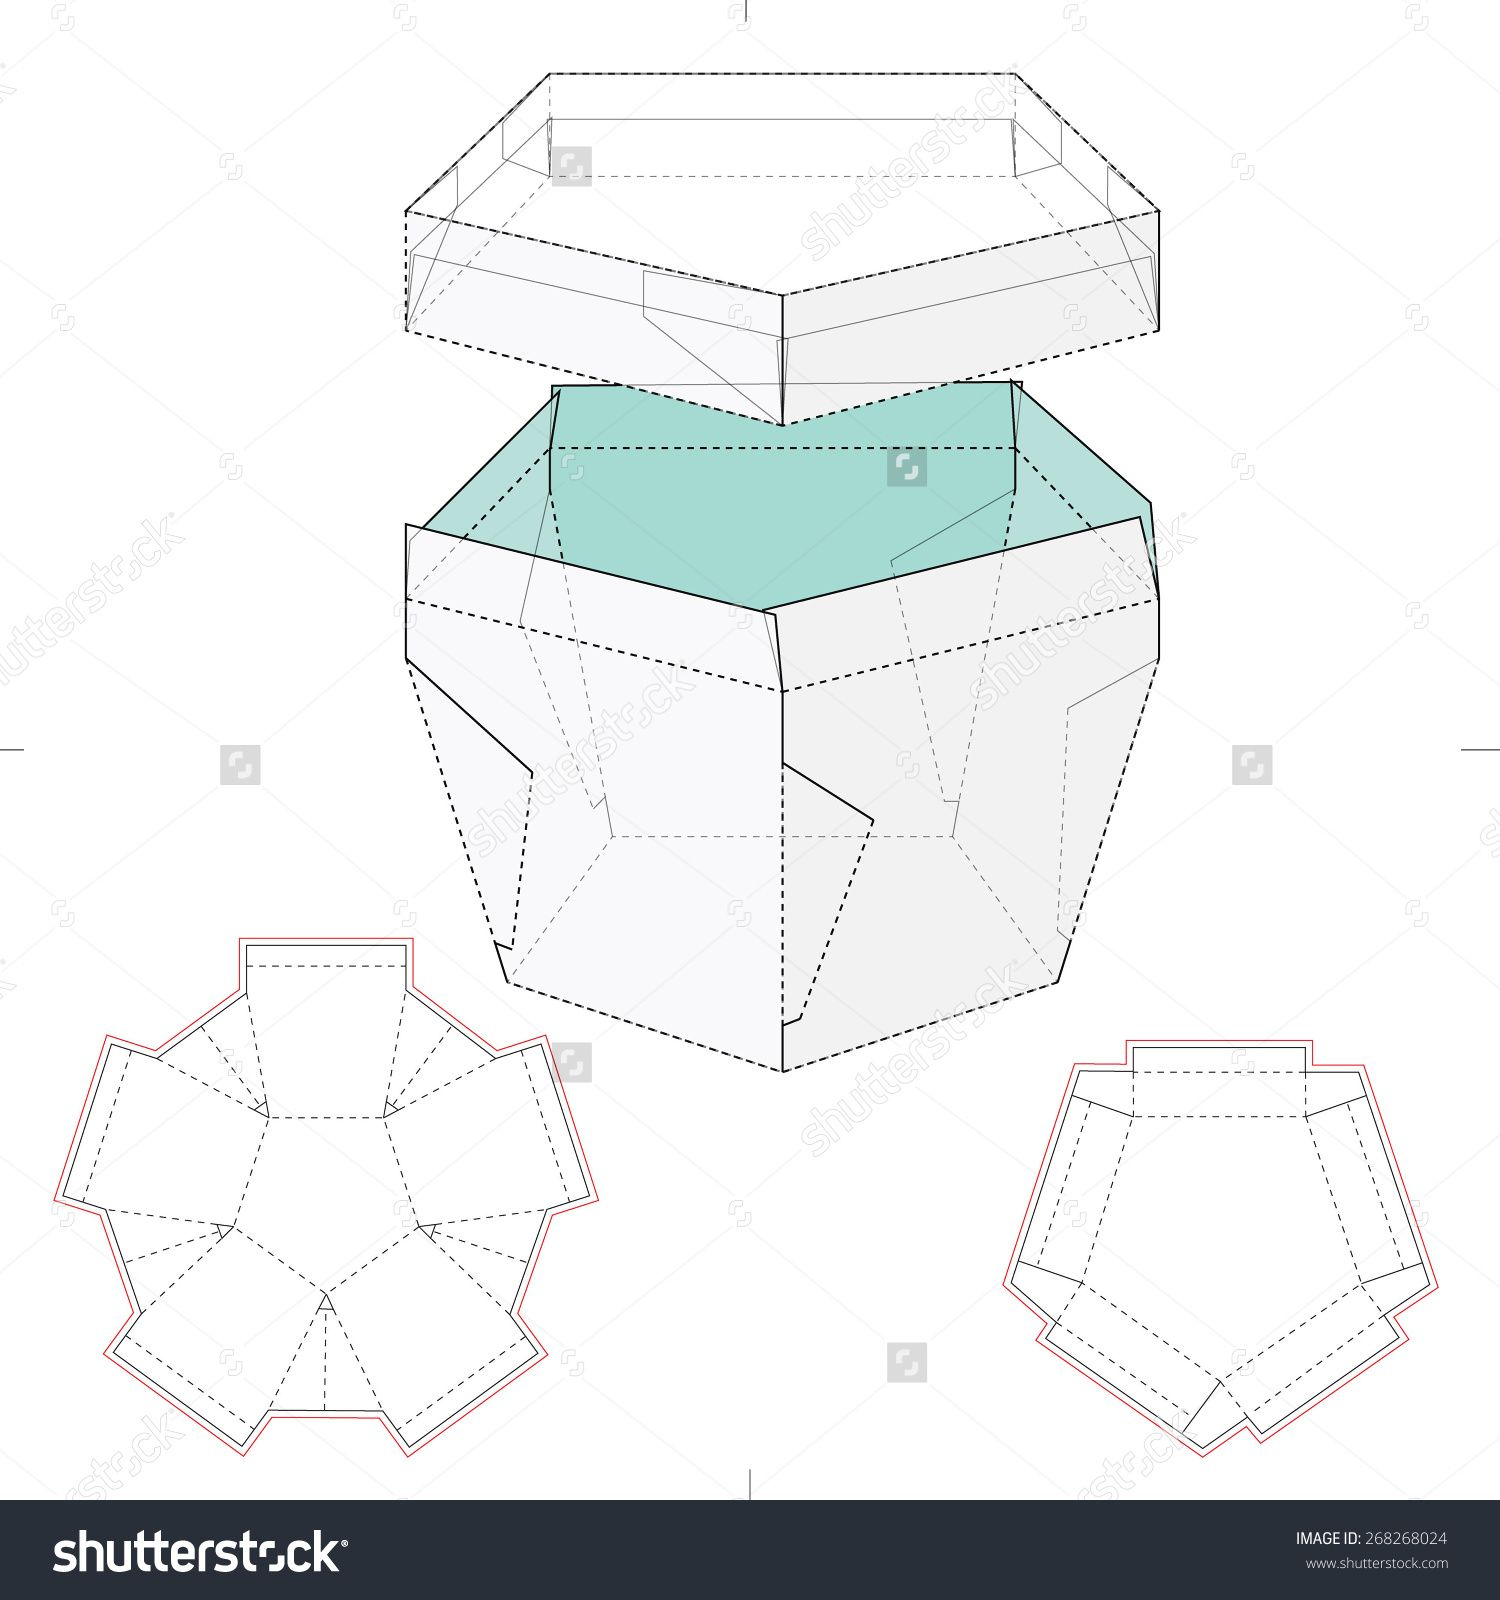 Pentagonal Box With Lid And Die Cut Template Stock Vector ... - photo#32